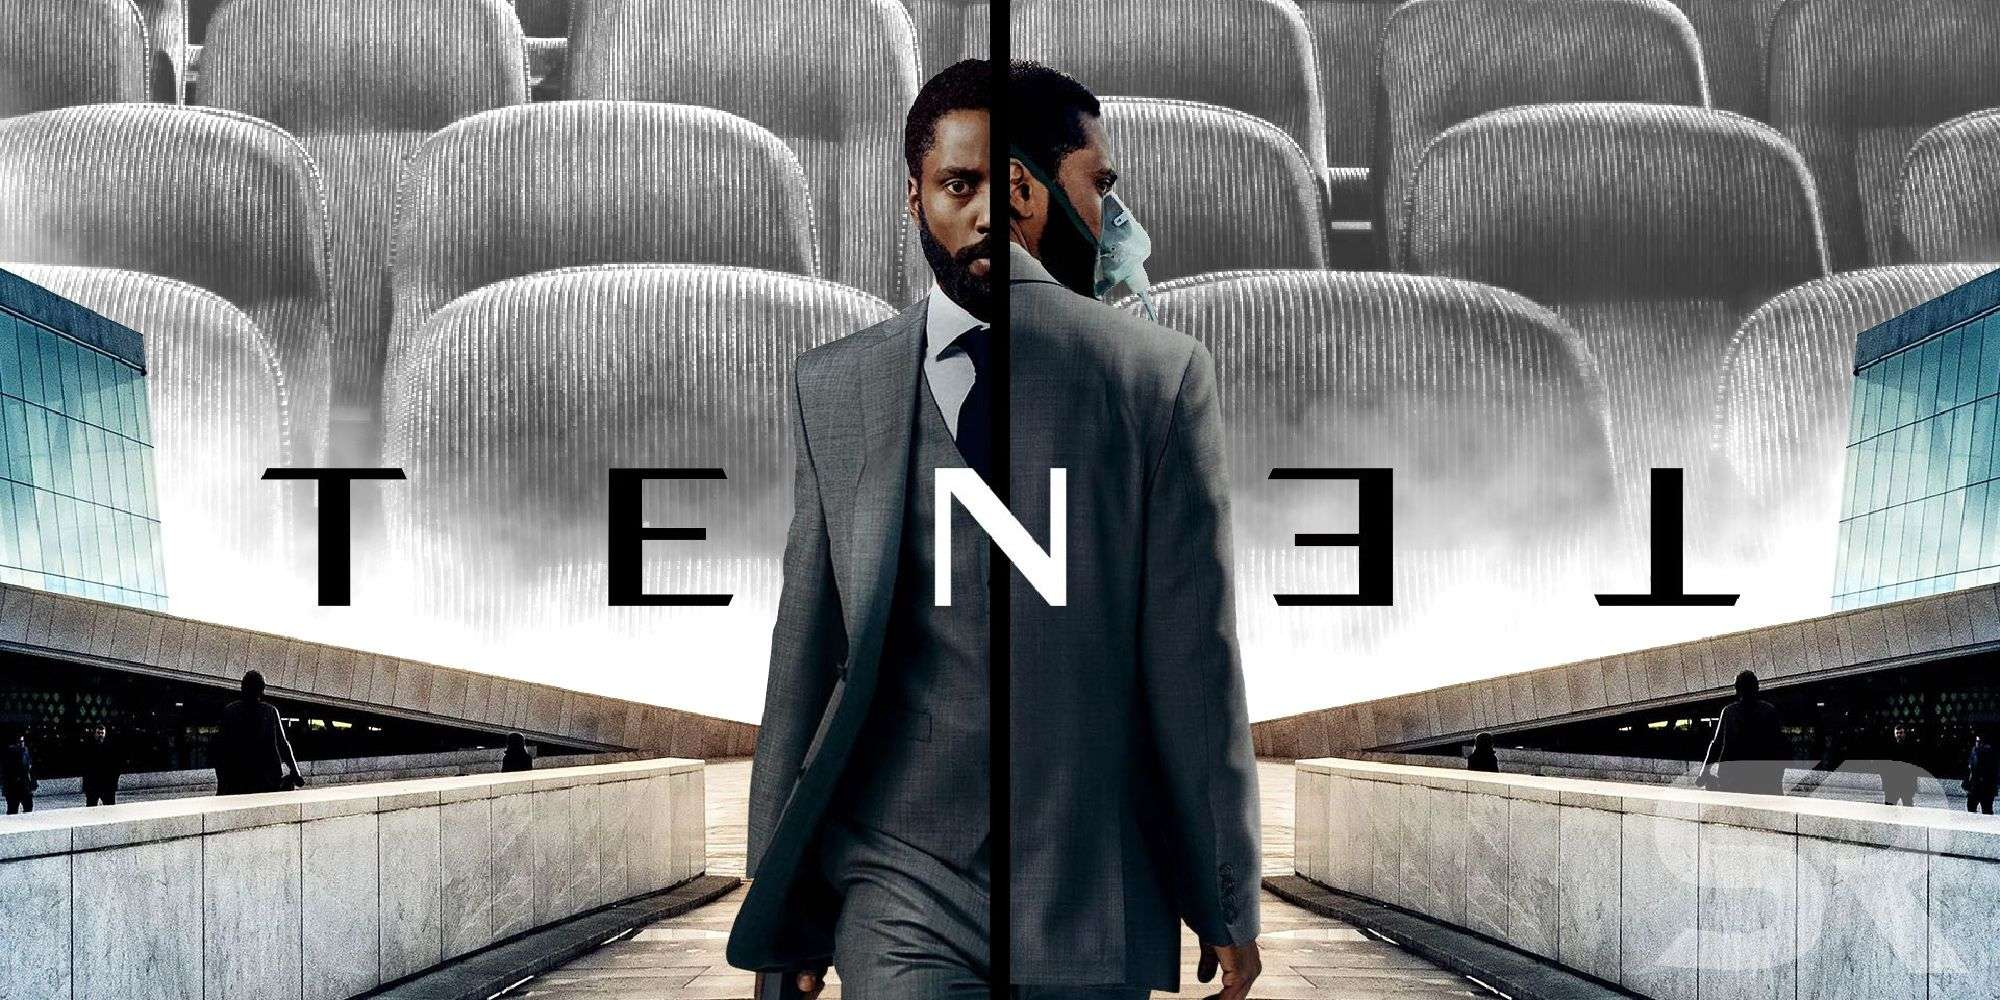 Tenet Set To Release In India On The 4th Of December